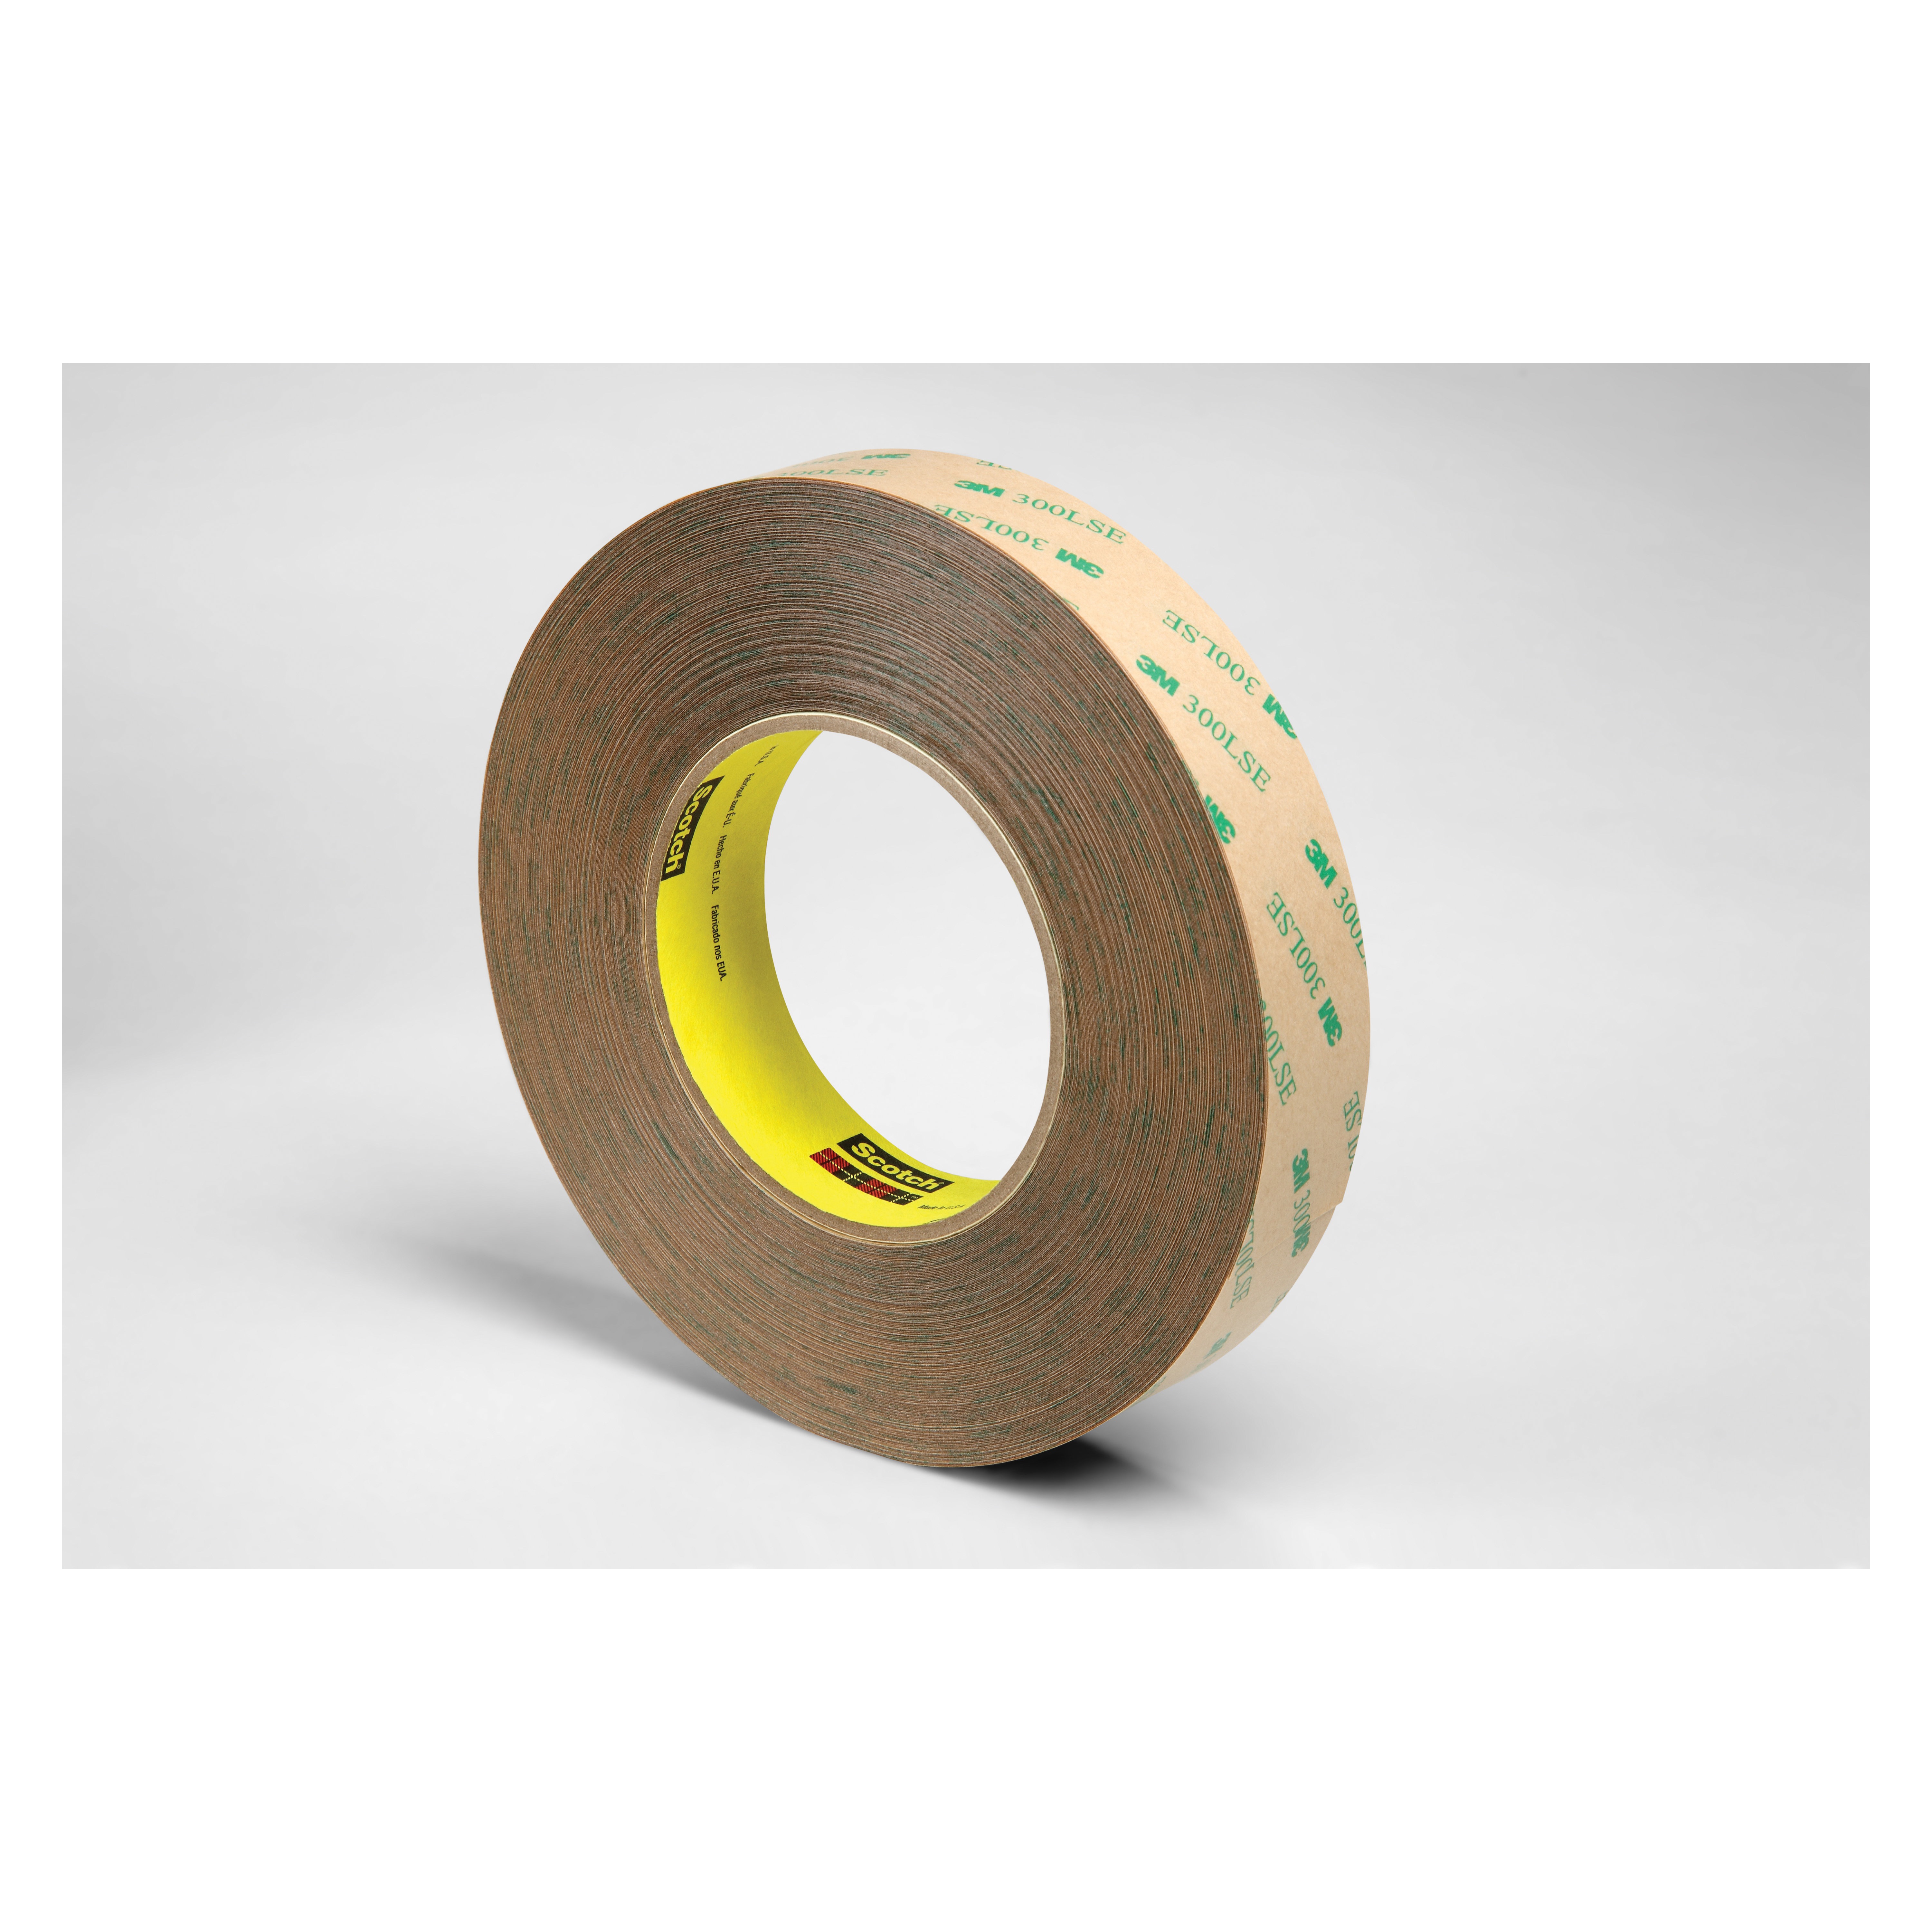 3M™ 021200-19335 High Performance Medium Tack Adhesive Transfer Tape, 60 yd L x 1/2 in W, 9.2 mil THK, 5 mil 200MP Acrylic Adhesive, Clear